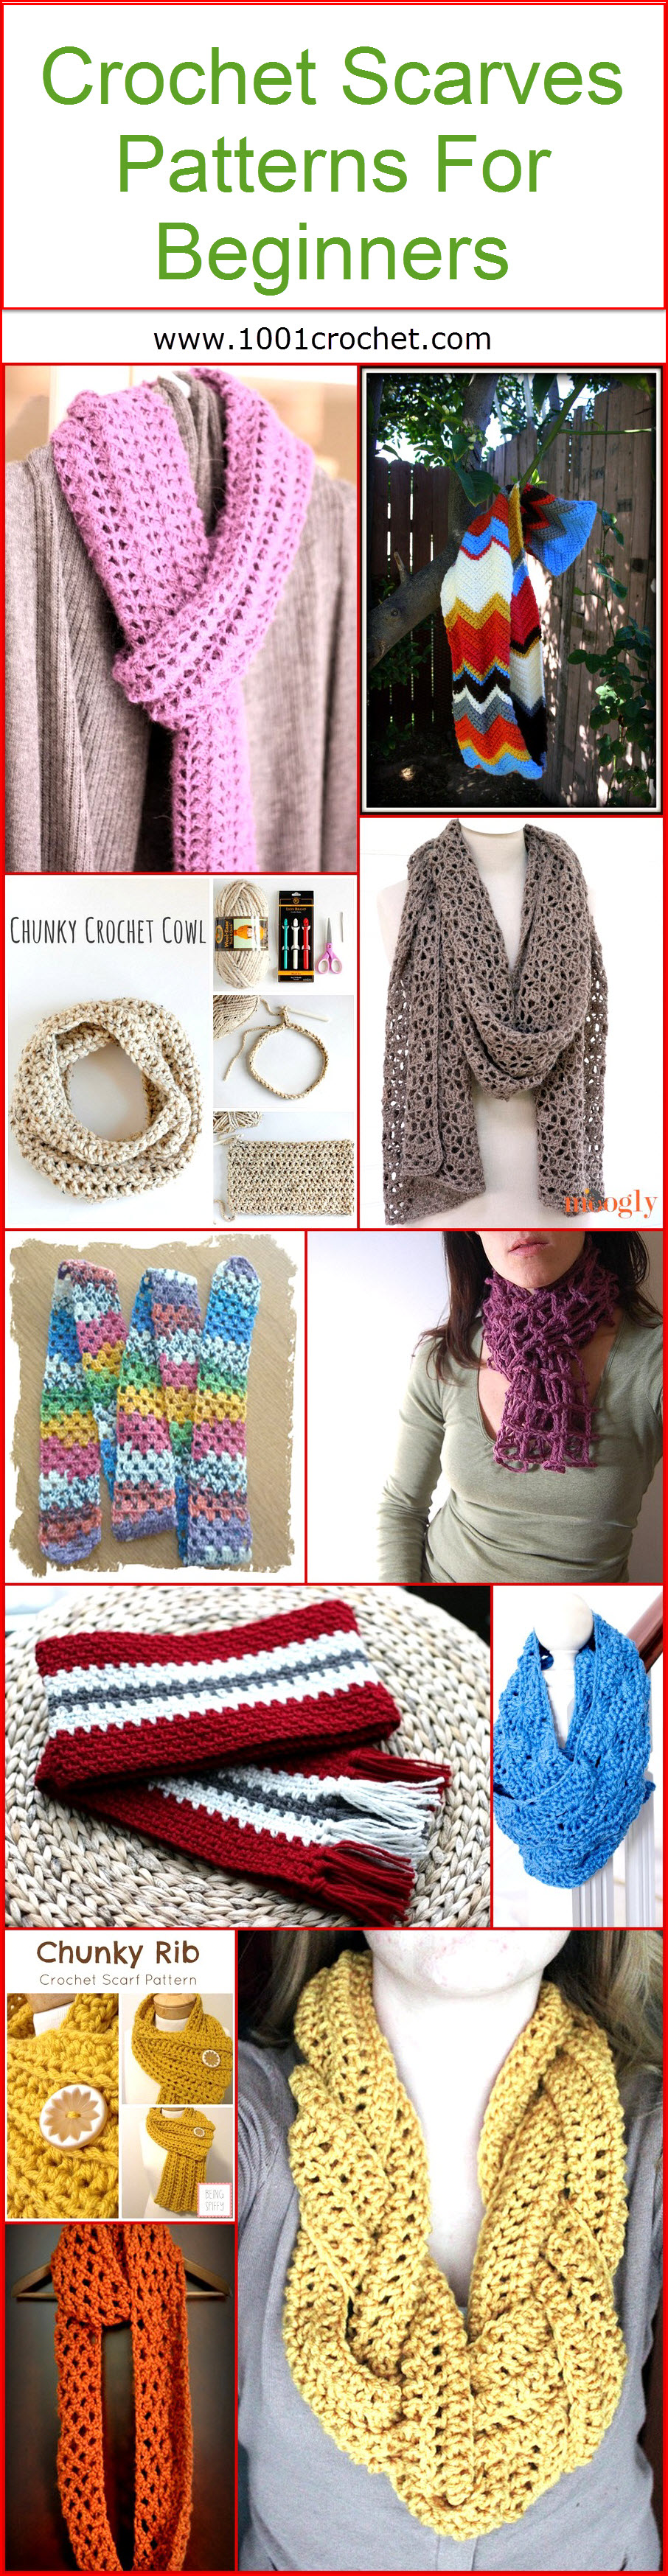 crochet-scarves-patterns-beginners